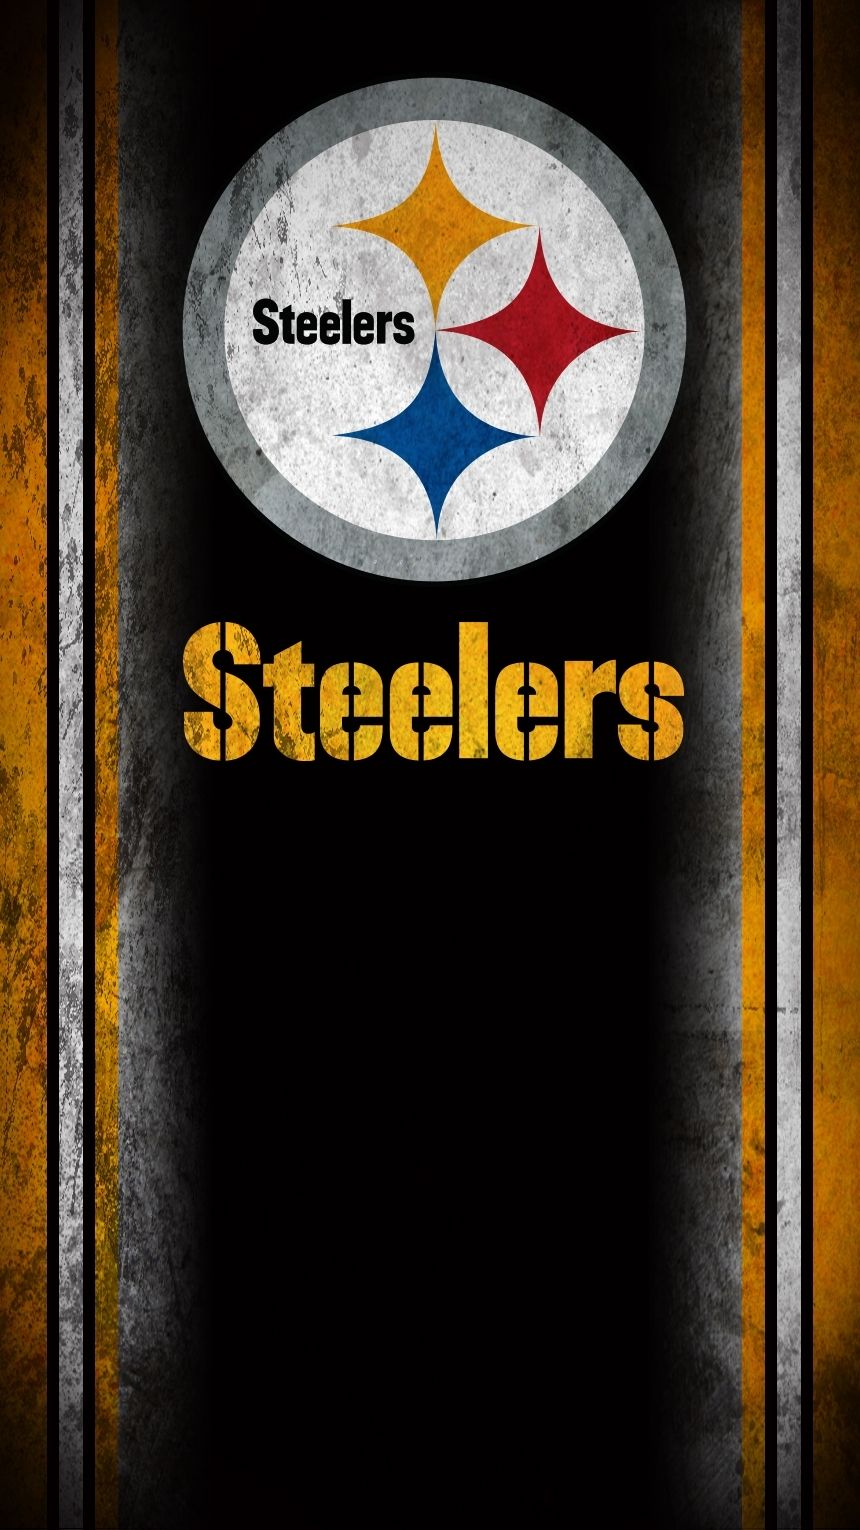 10 Most Popular Steelers Wallpapers For Iphone Full Hd 1920 1080 For Pc Desktop 2019 Iphone Wallpaper Desktop Pc Wallpaper